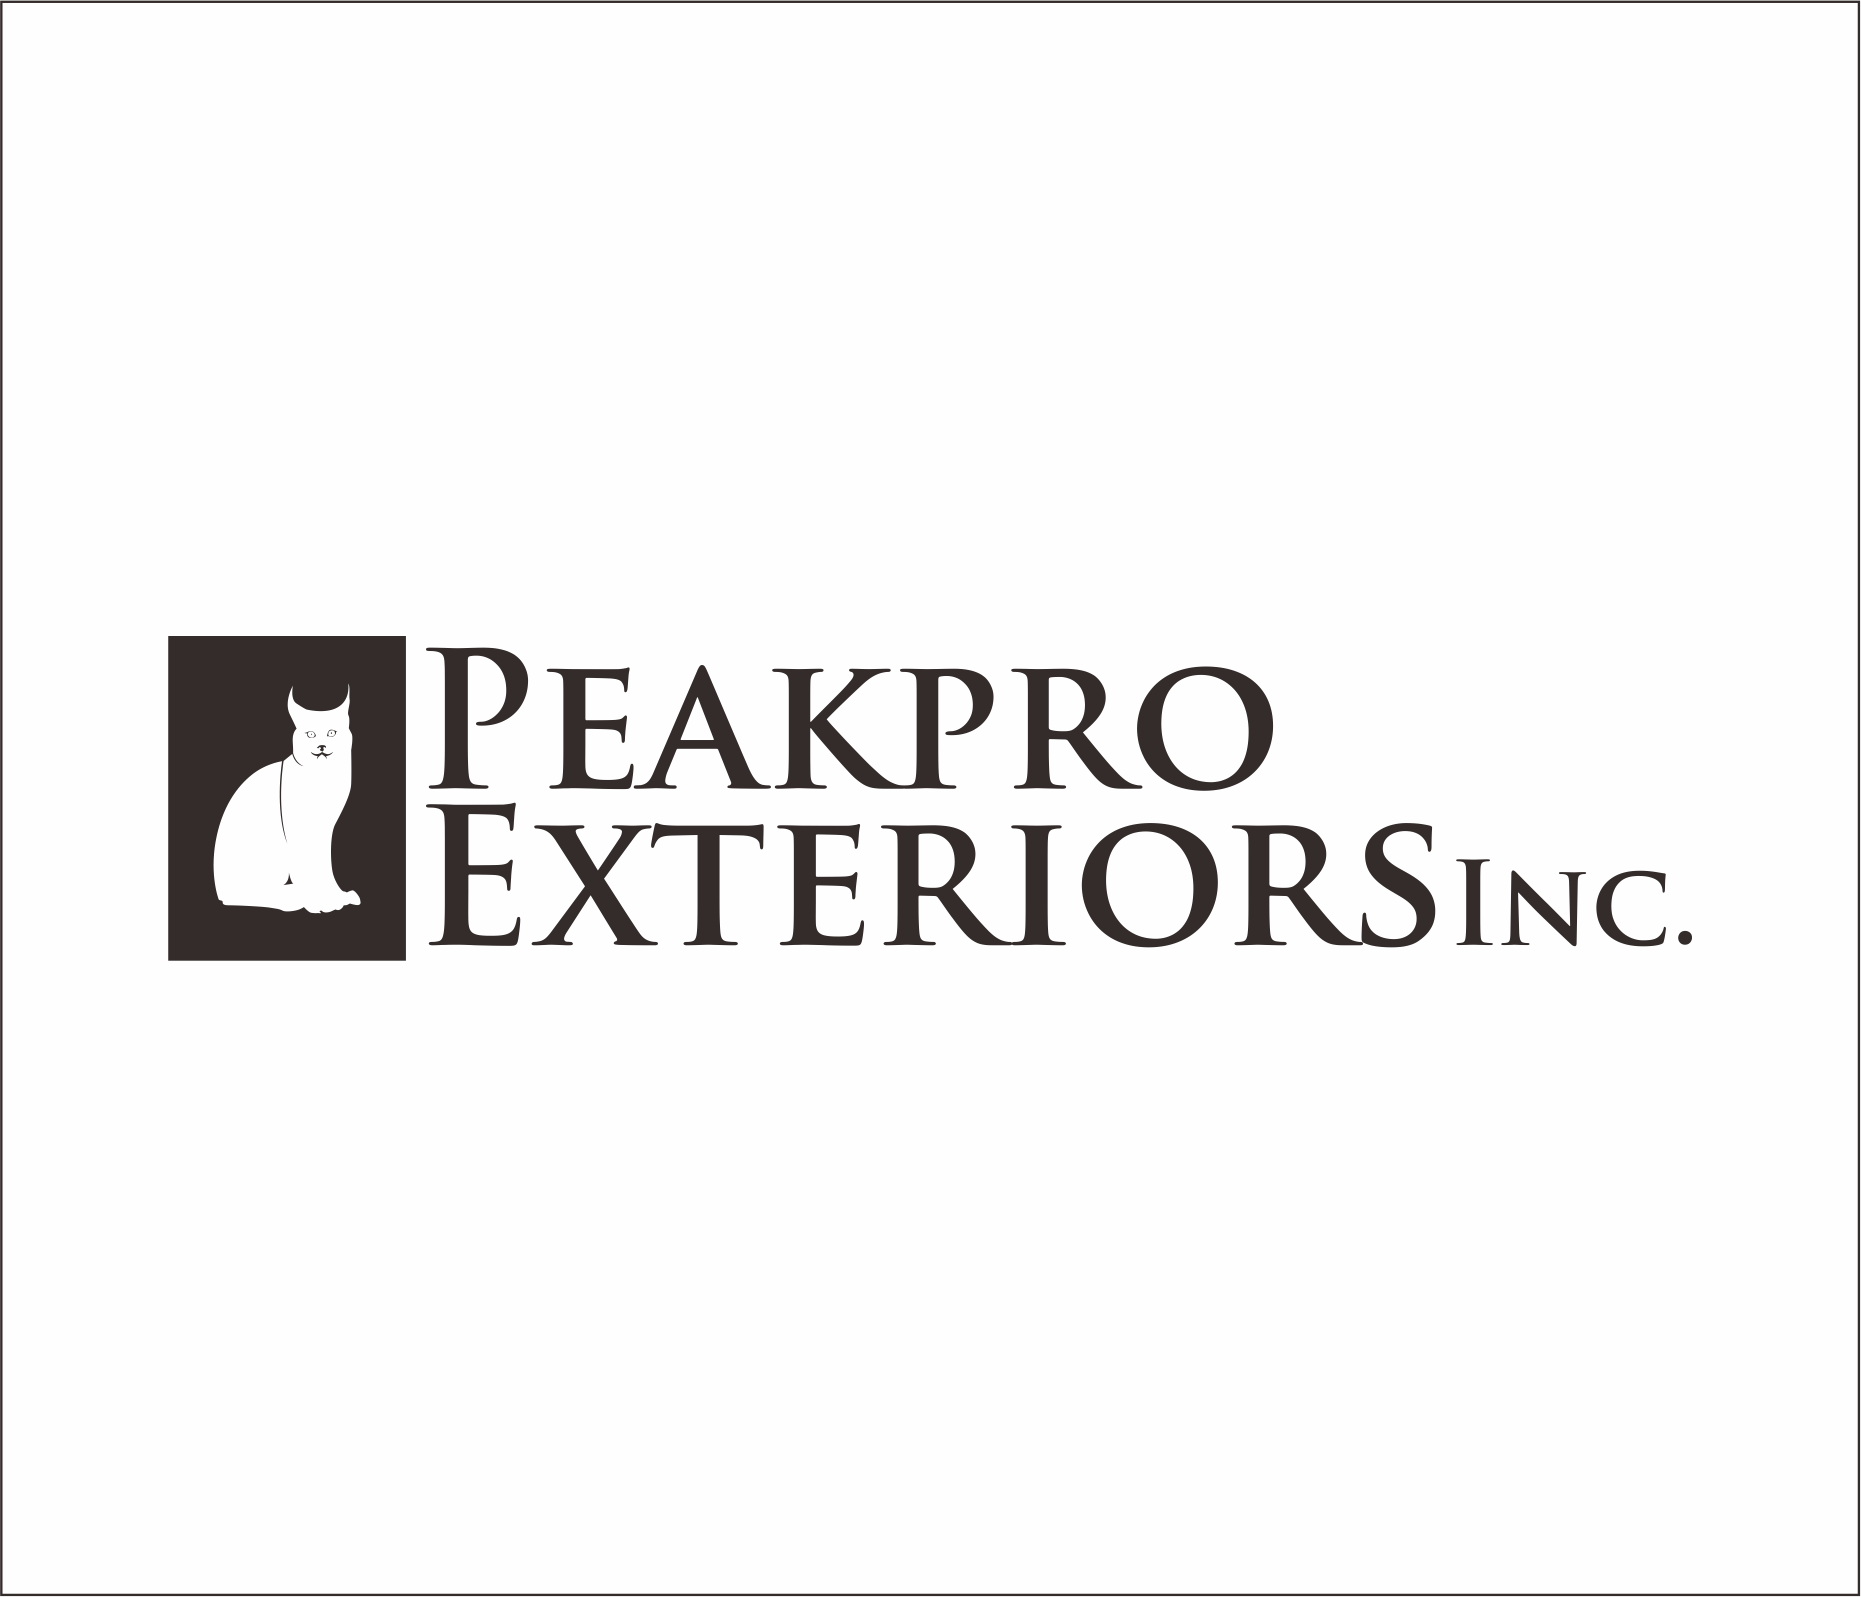 Logo Design by Armada Jamaluddin - Entry No. 162 in the Logo Design Contest Captivating Logo Design for Peakpro Exteriors Inc..